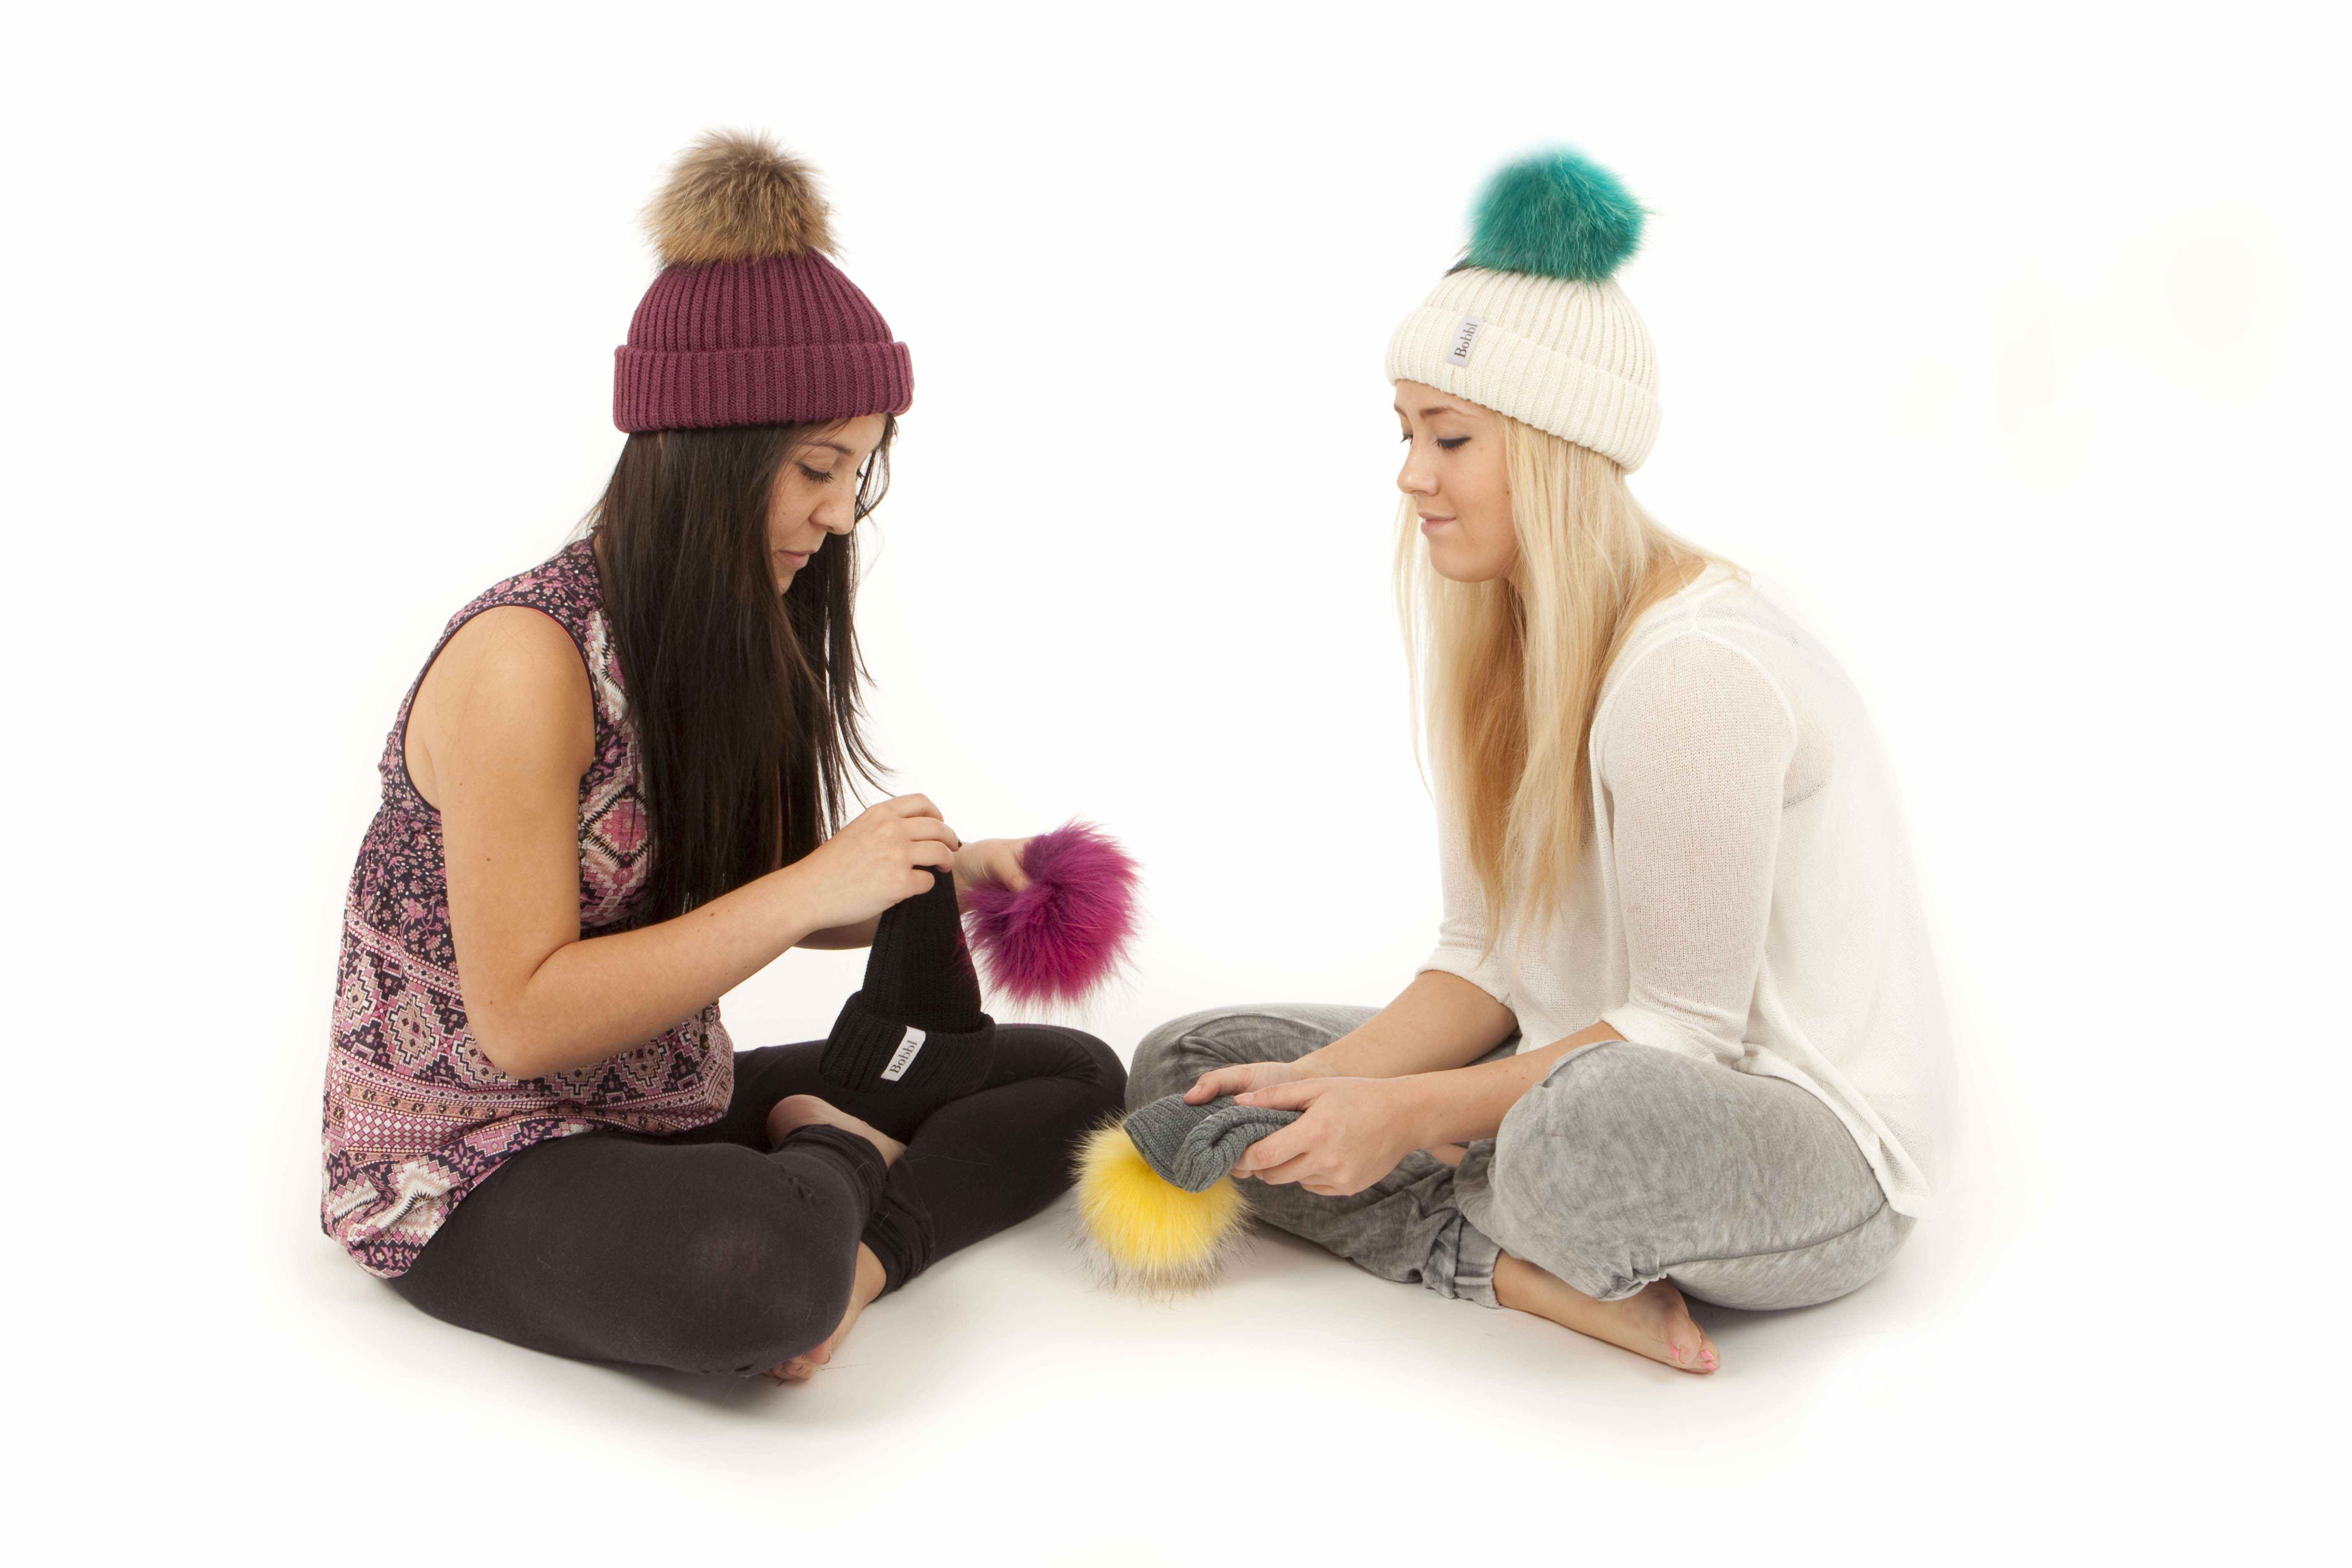 Mix and match your bobbls with friends using the popper on the top of your Bobbl hat